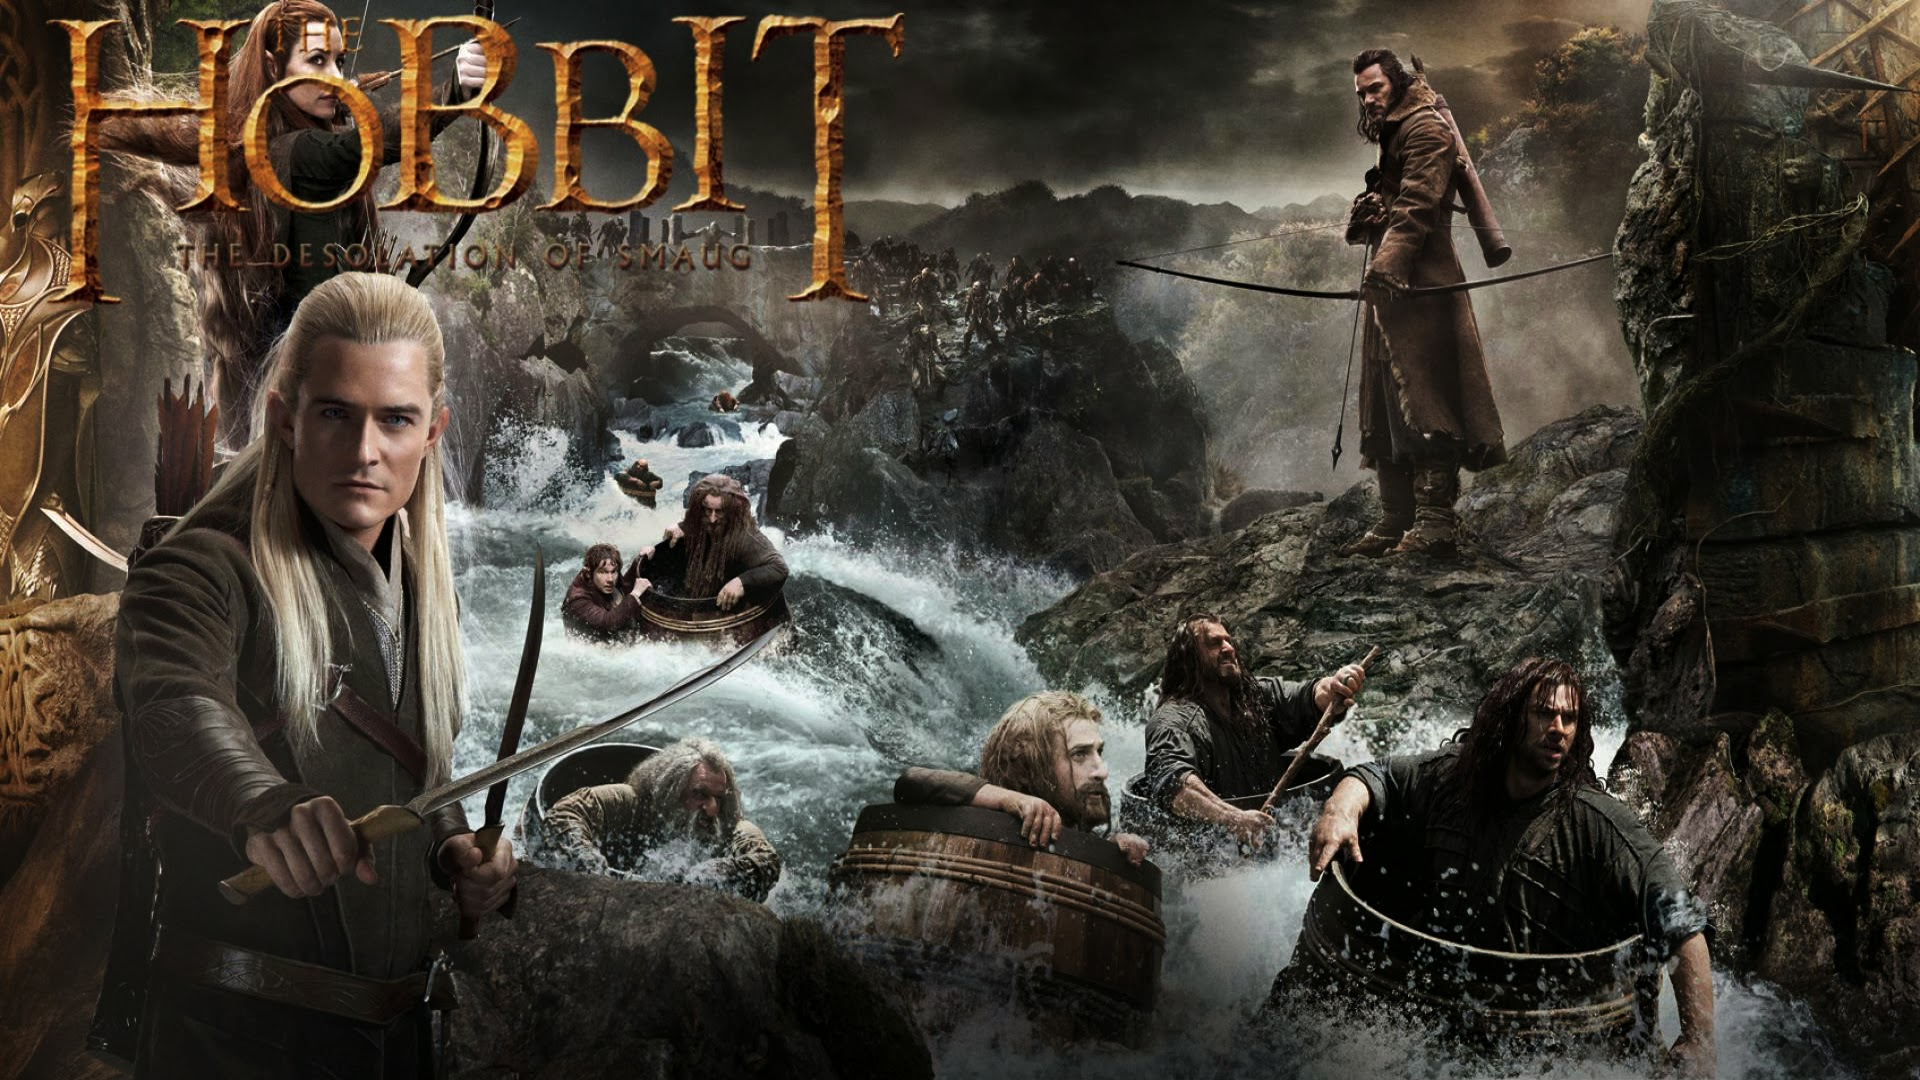 the hobbit the desolation of smaug hd wallpaper picture